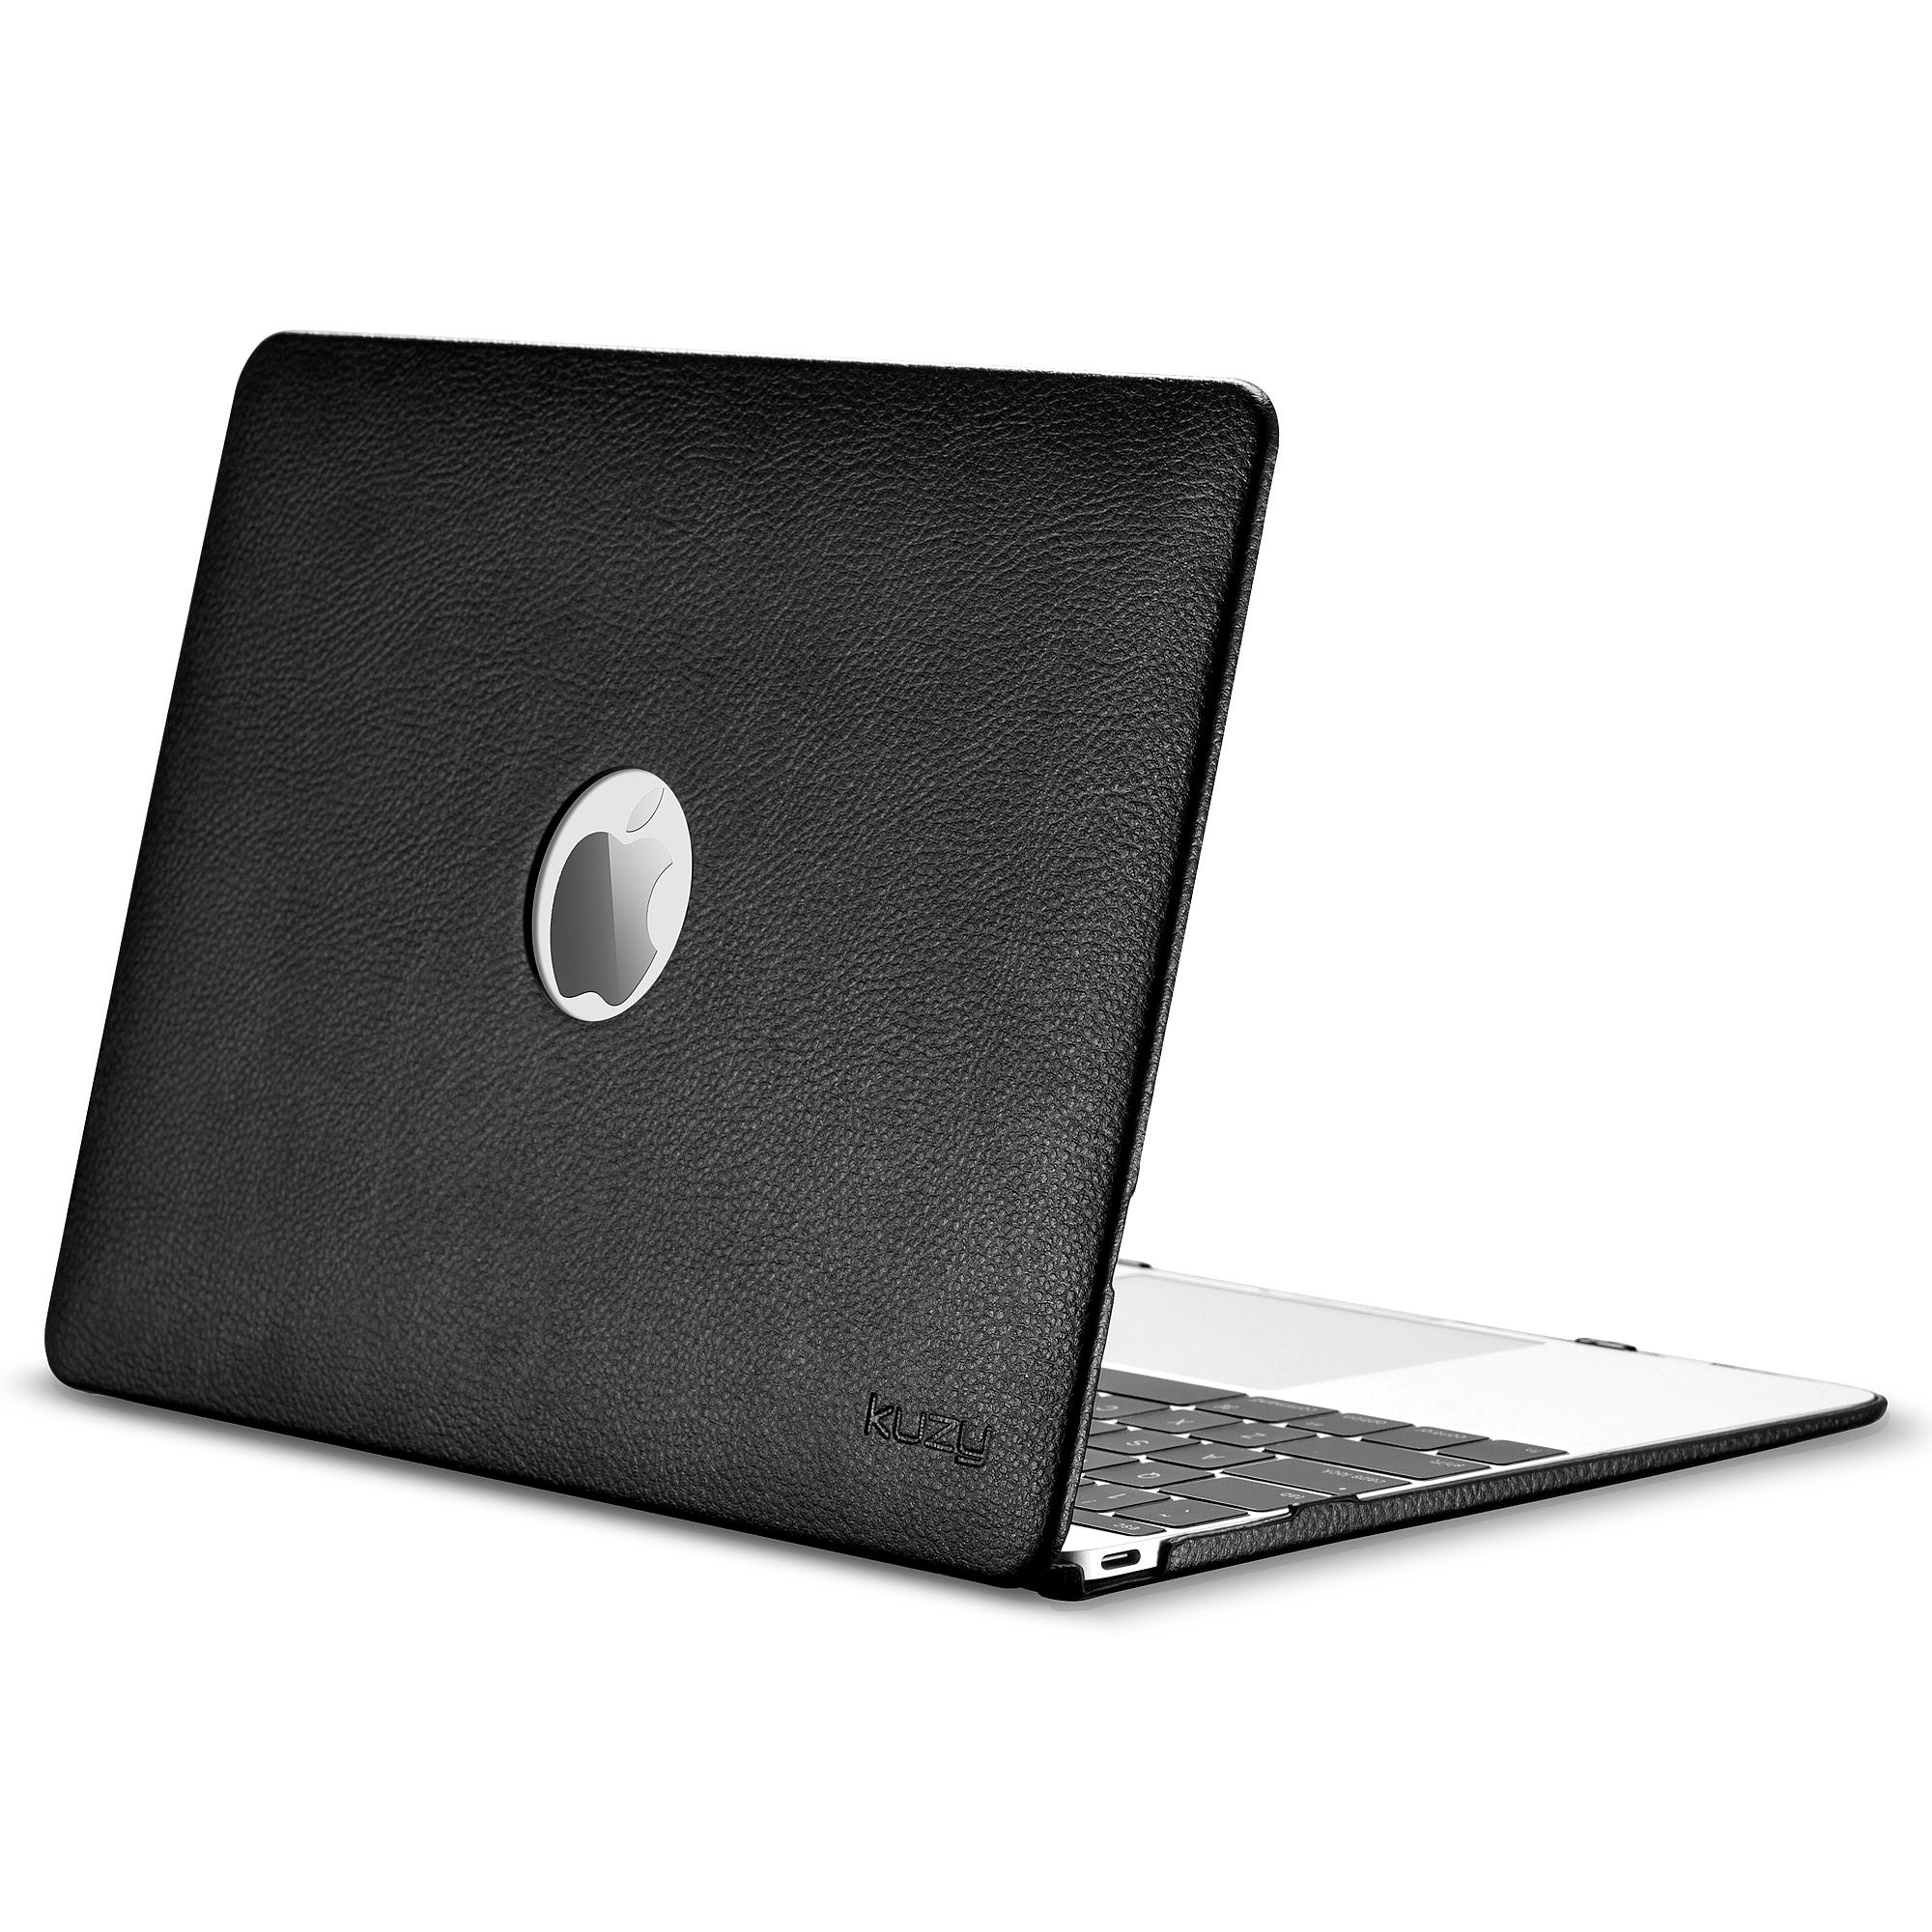 ee12641bdb59 Leather Hard Case for MacBook 12